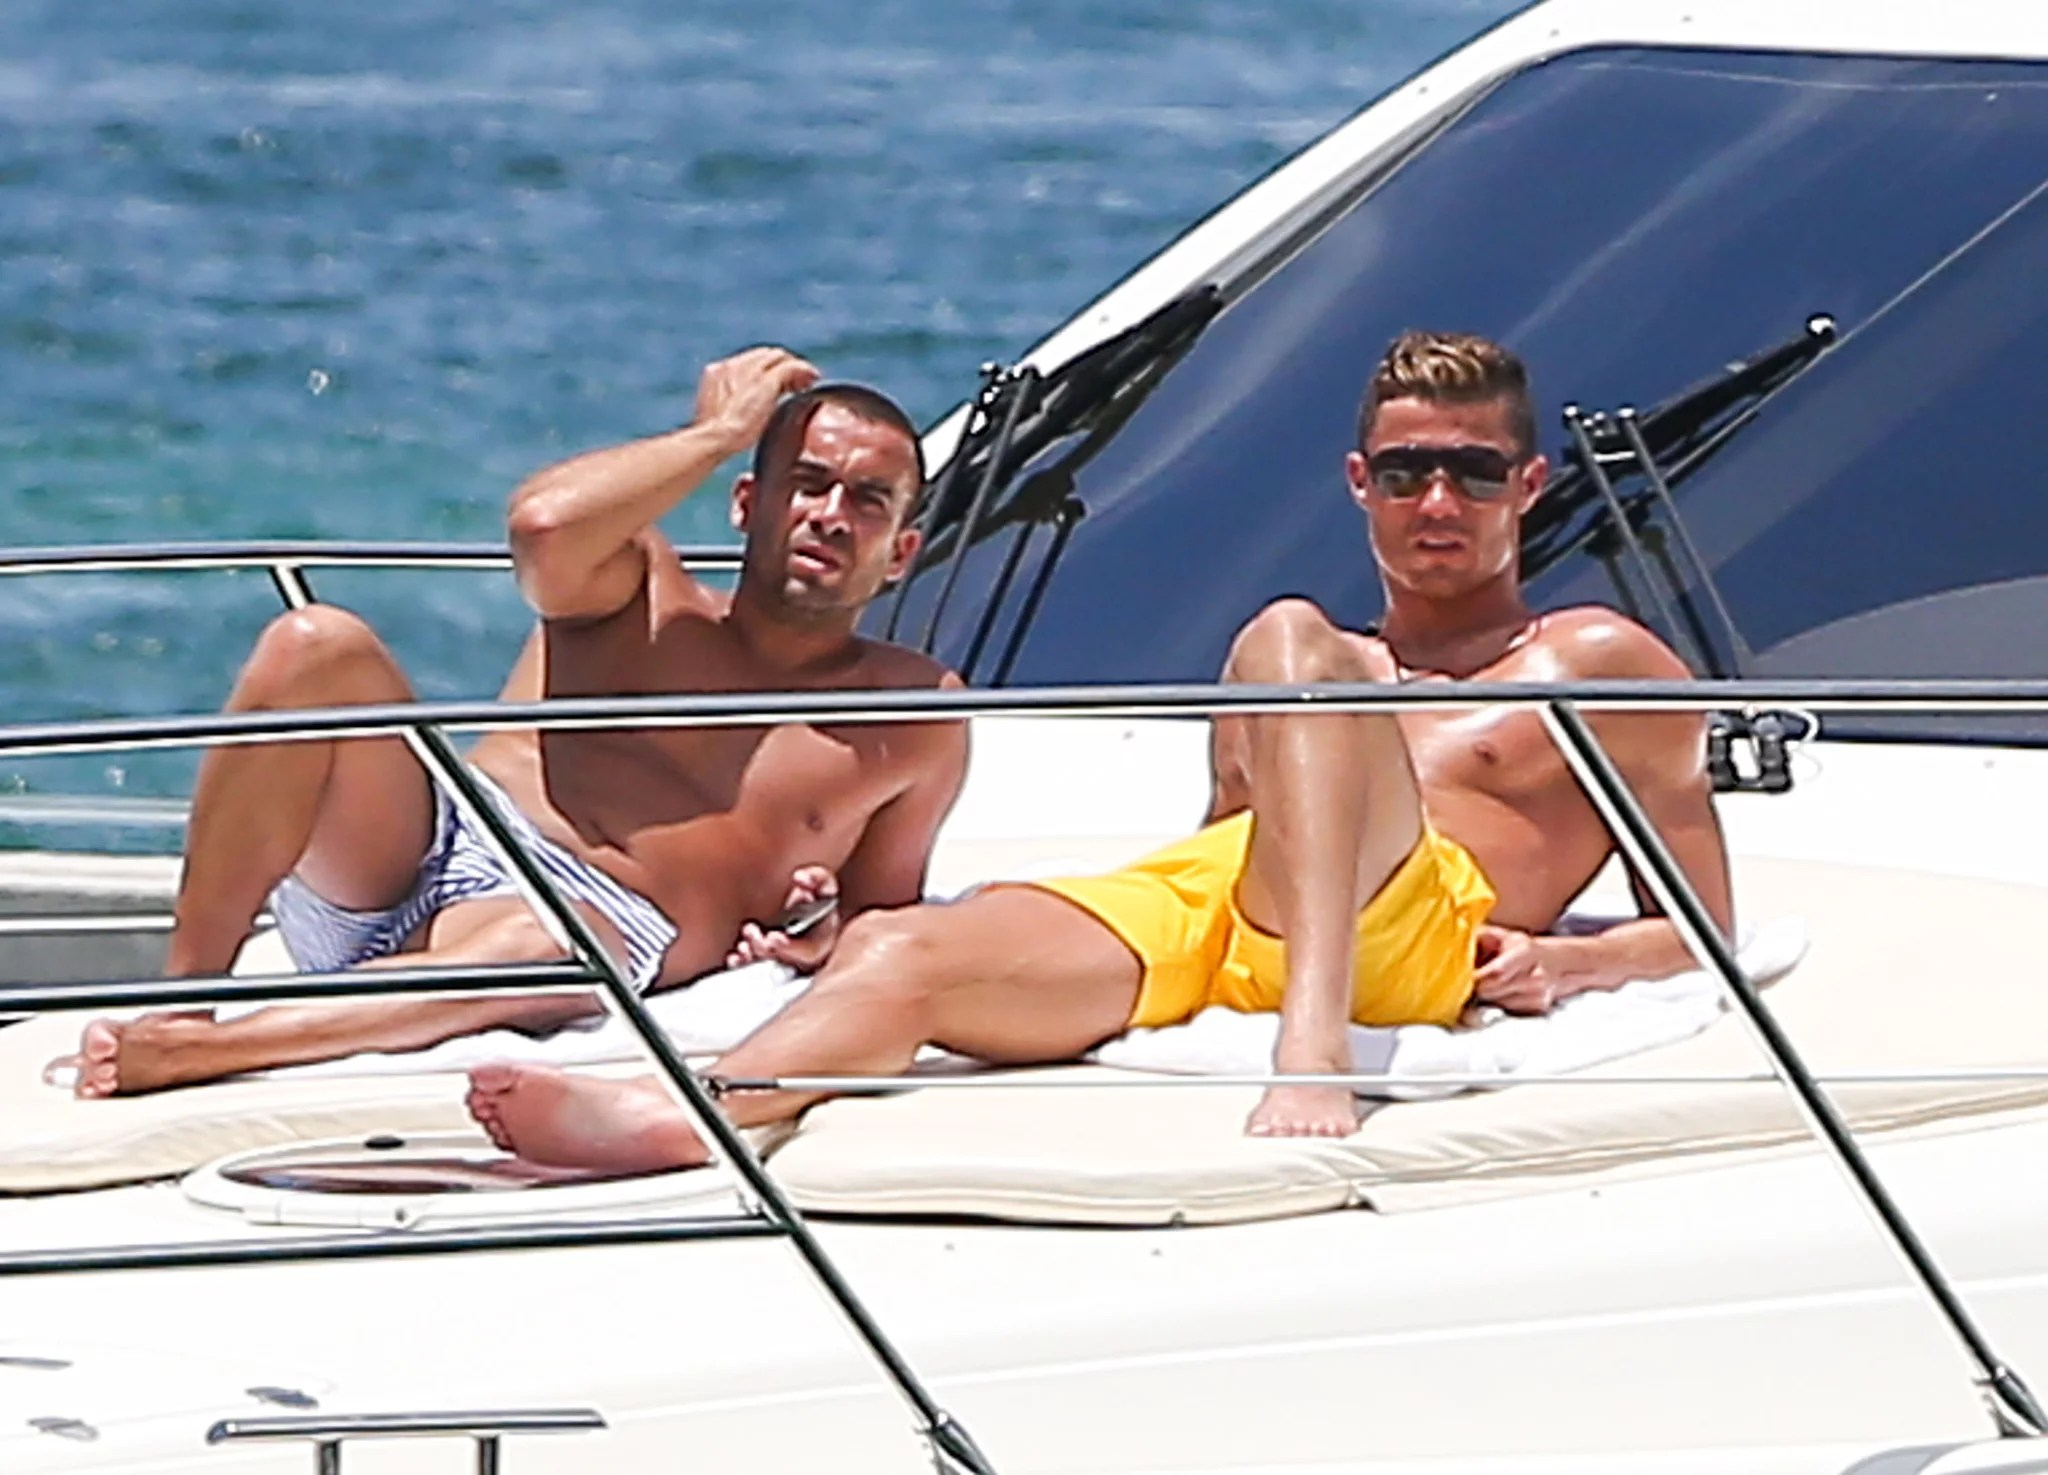 Soccer Player Cristiano Ronaldo Relaxed On A Yacht With A Pal In Rafael Nadal Serena Williams And More Sports Stars Hit The Beach Popsugar Celebrity Photo 8